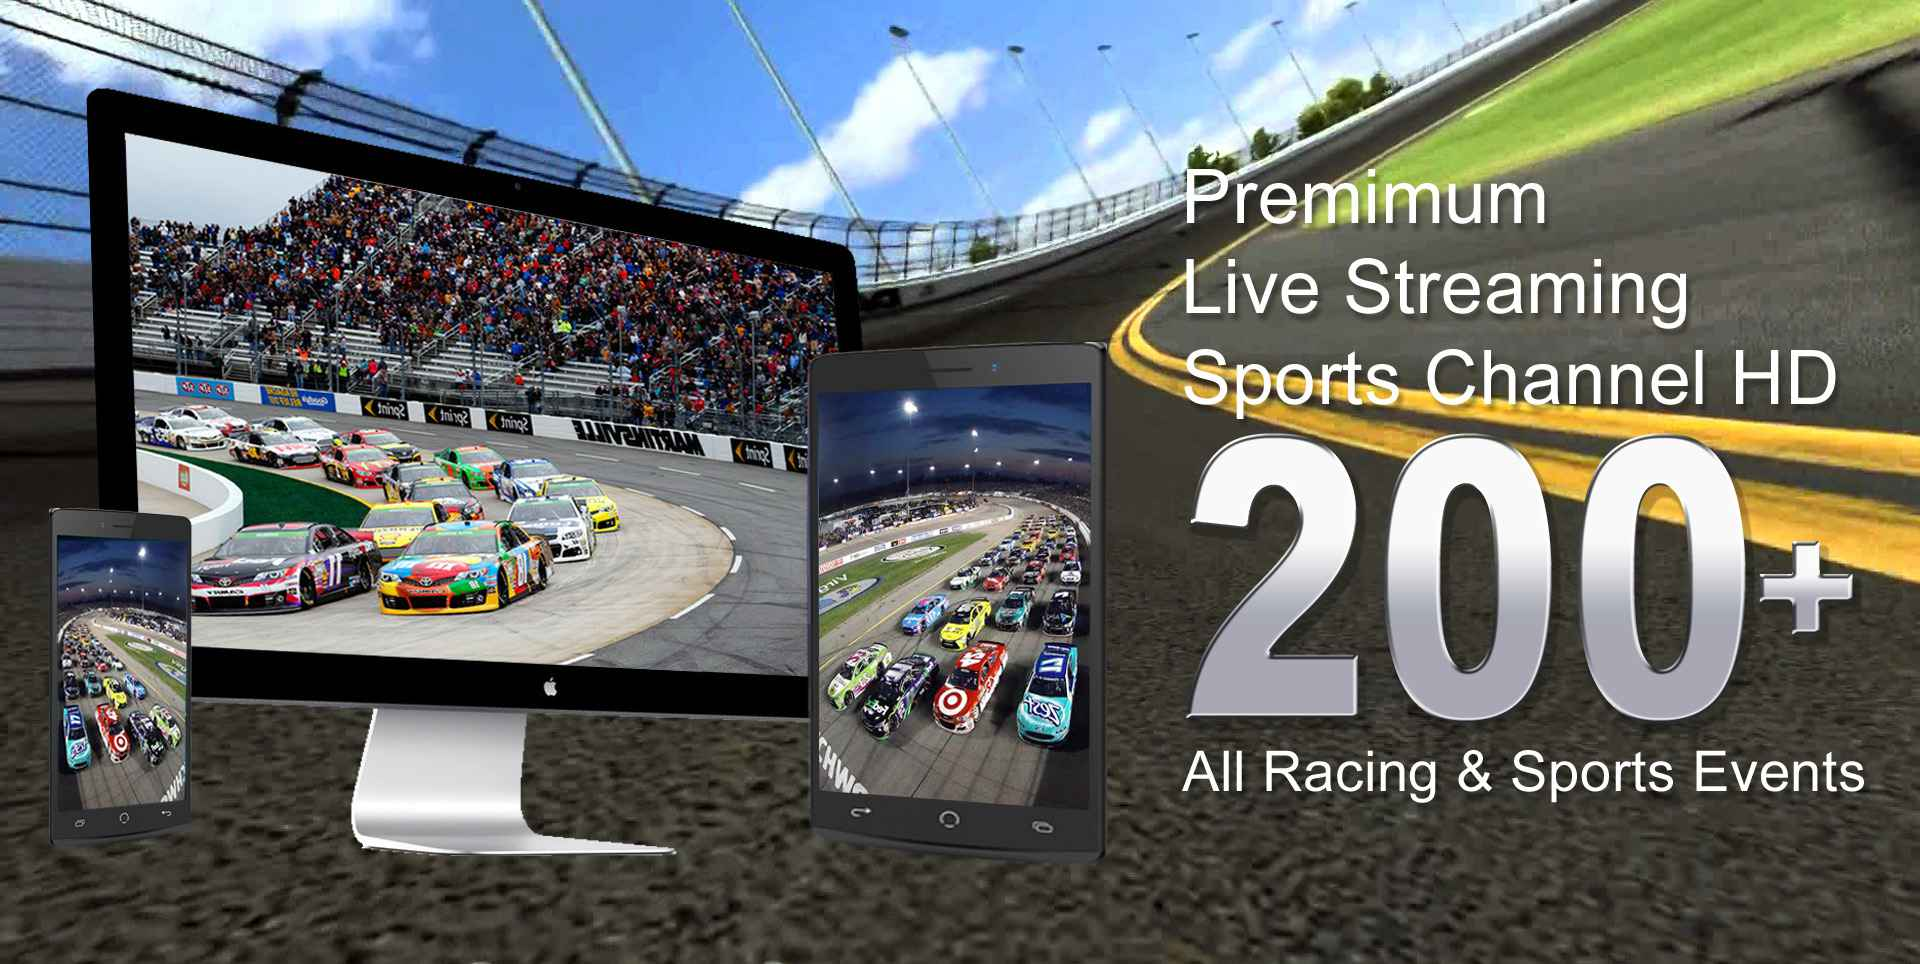 nascar-tours-speedway-race-live